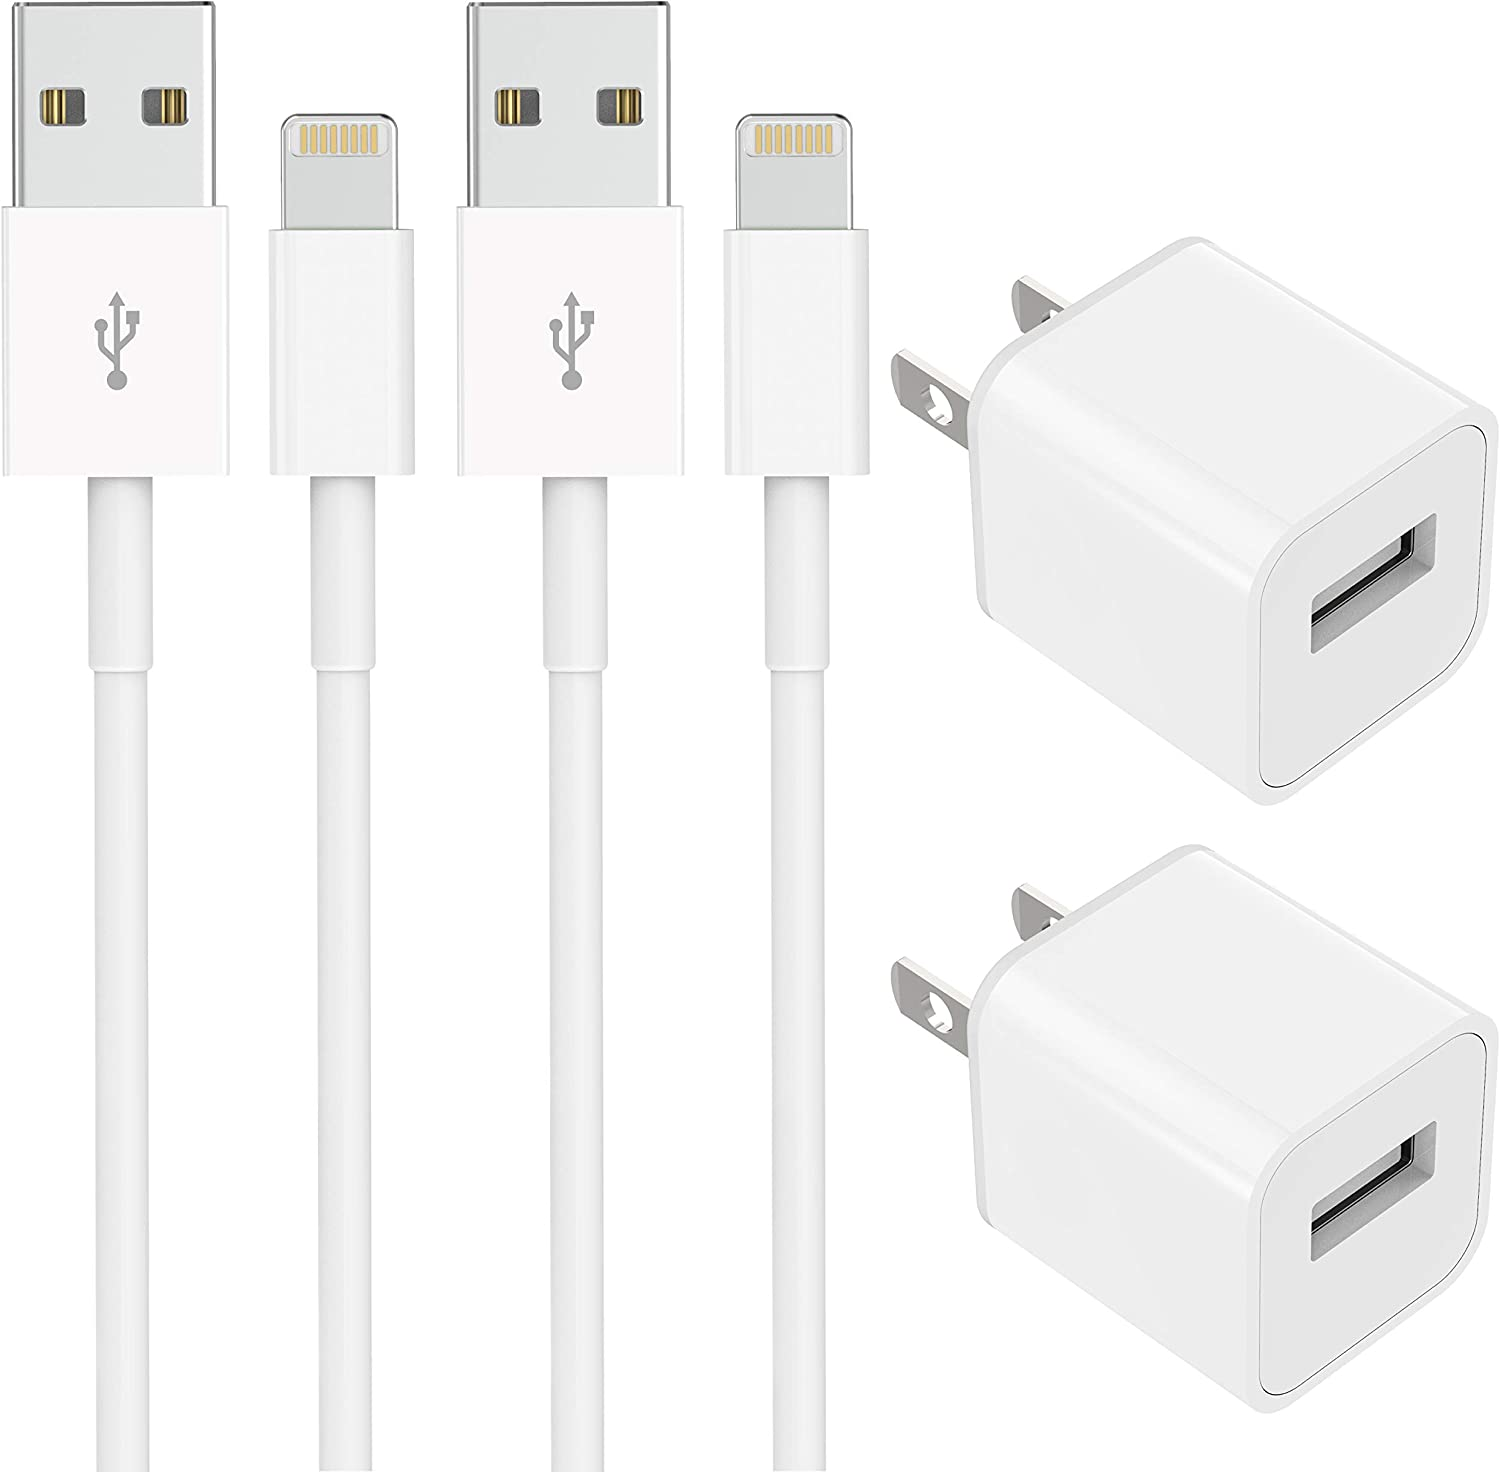 TT&C USB Wall Charger Adapter Block Fast Charging Certified Lightning Cable【5ft】Cord Data Sync Compatible with iPhone 11, Xs Max, XR, X, 8, 8Plus 7, 7Plus 6, 6S , 6S Plus, SE, 5S, 5C, iPad Mini, iPod